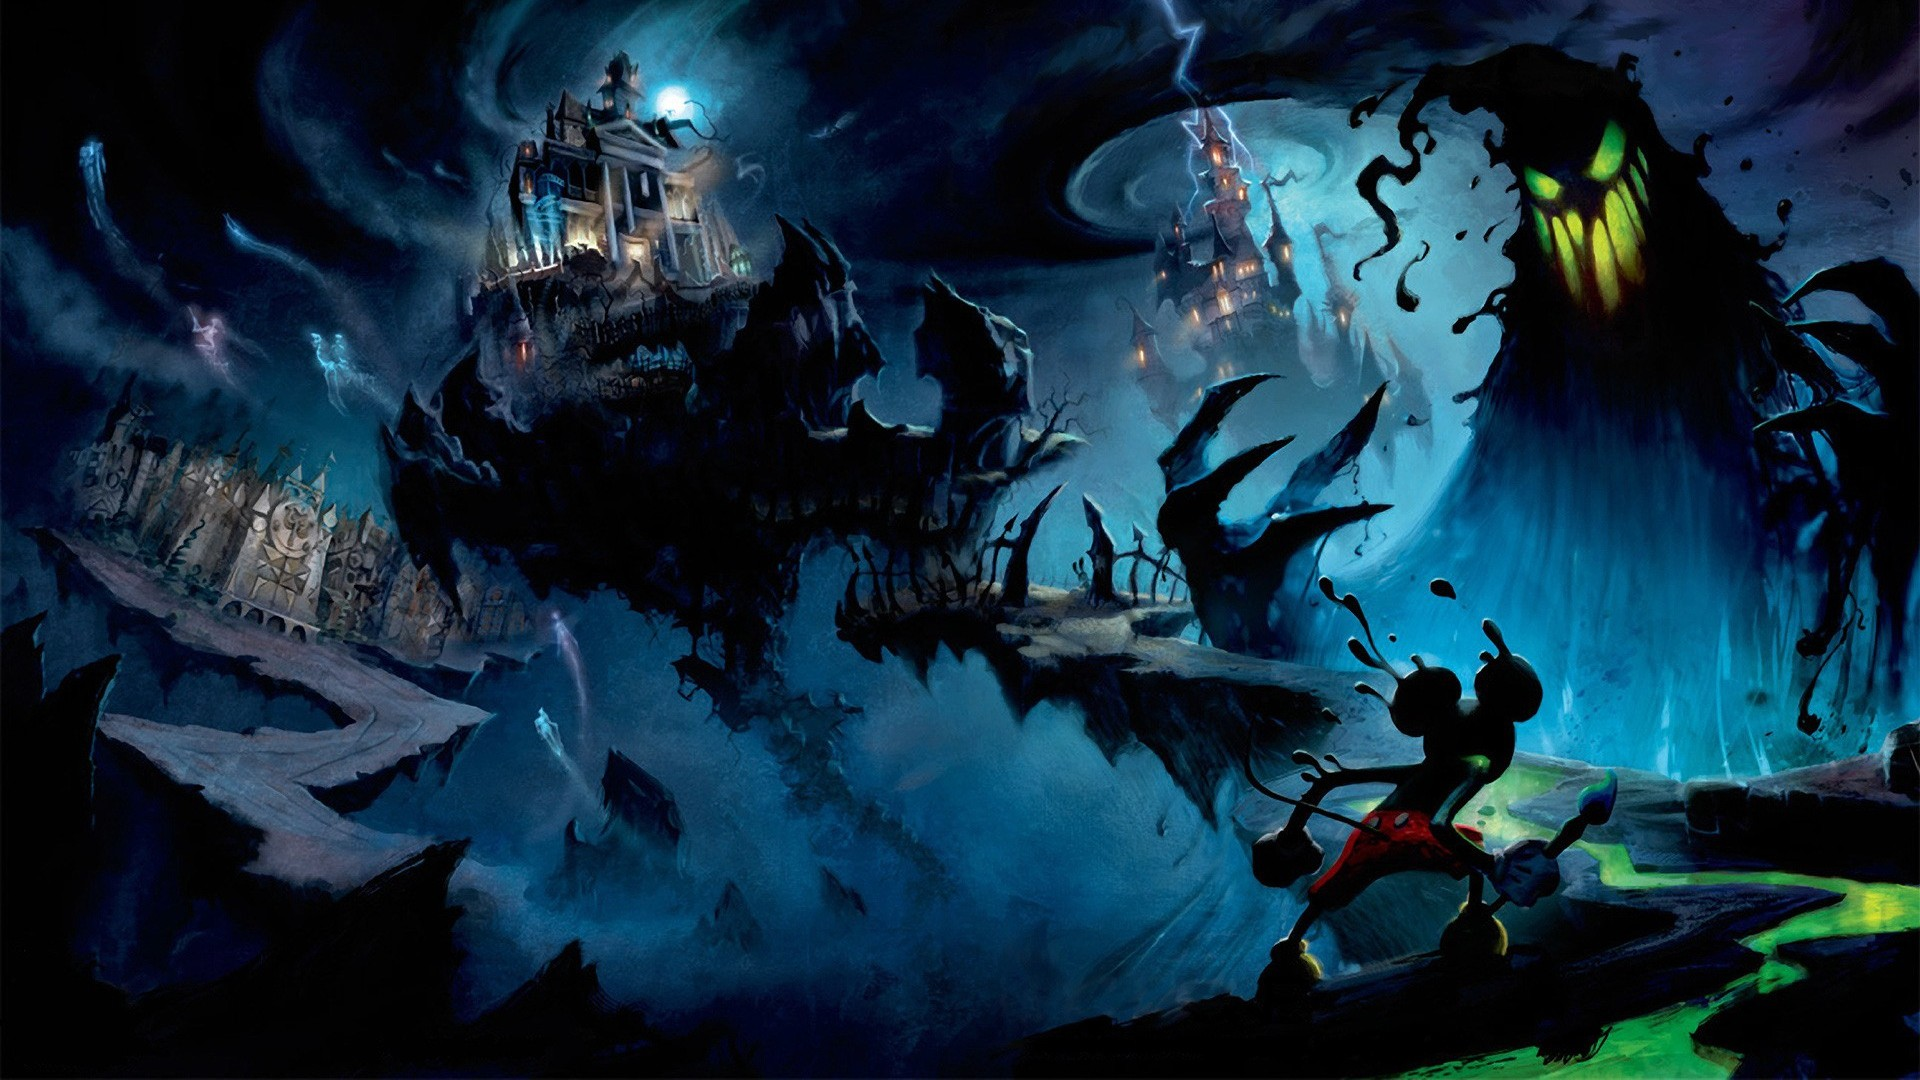 Wallpaper disney epic mickey, junction point studios, oswald  lucky rabbit, mickey mouse